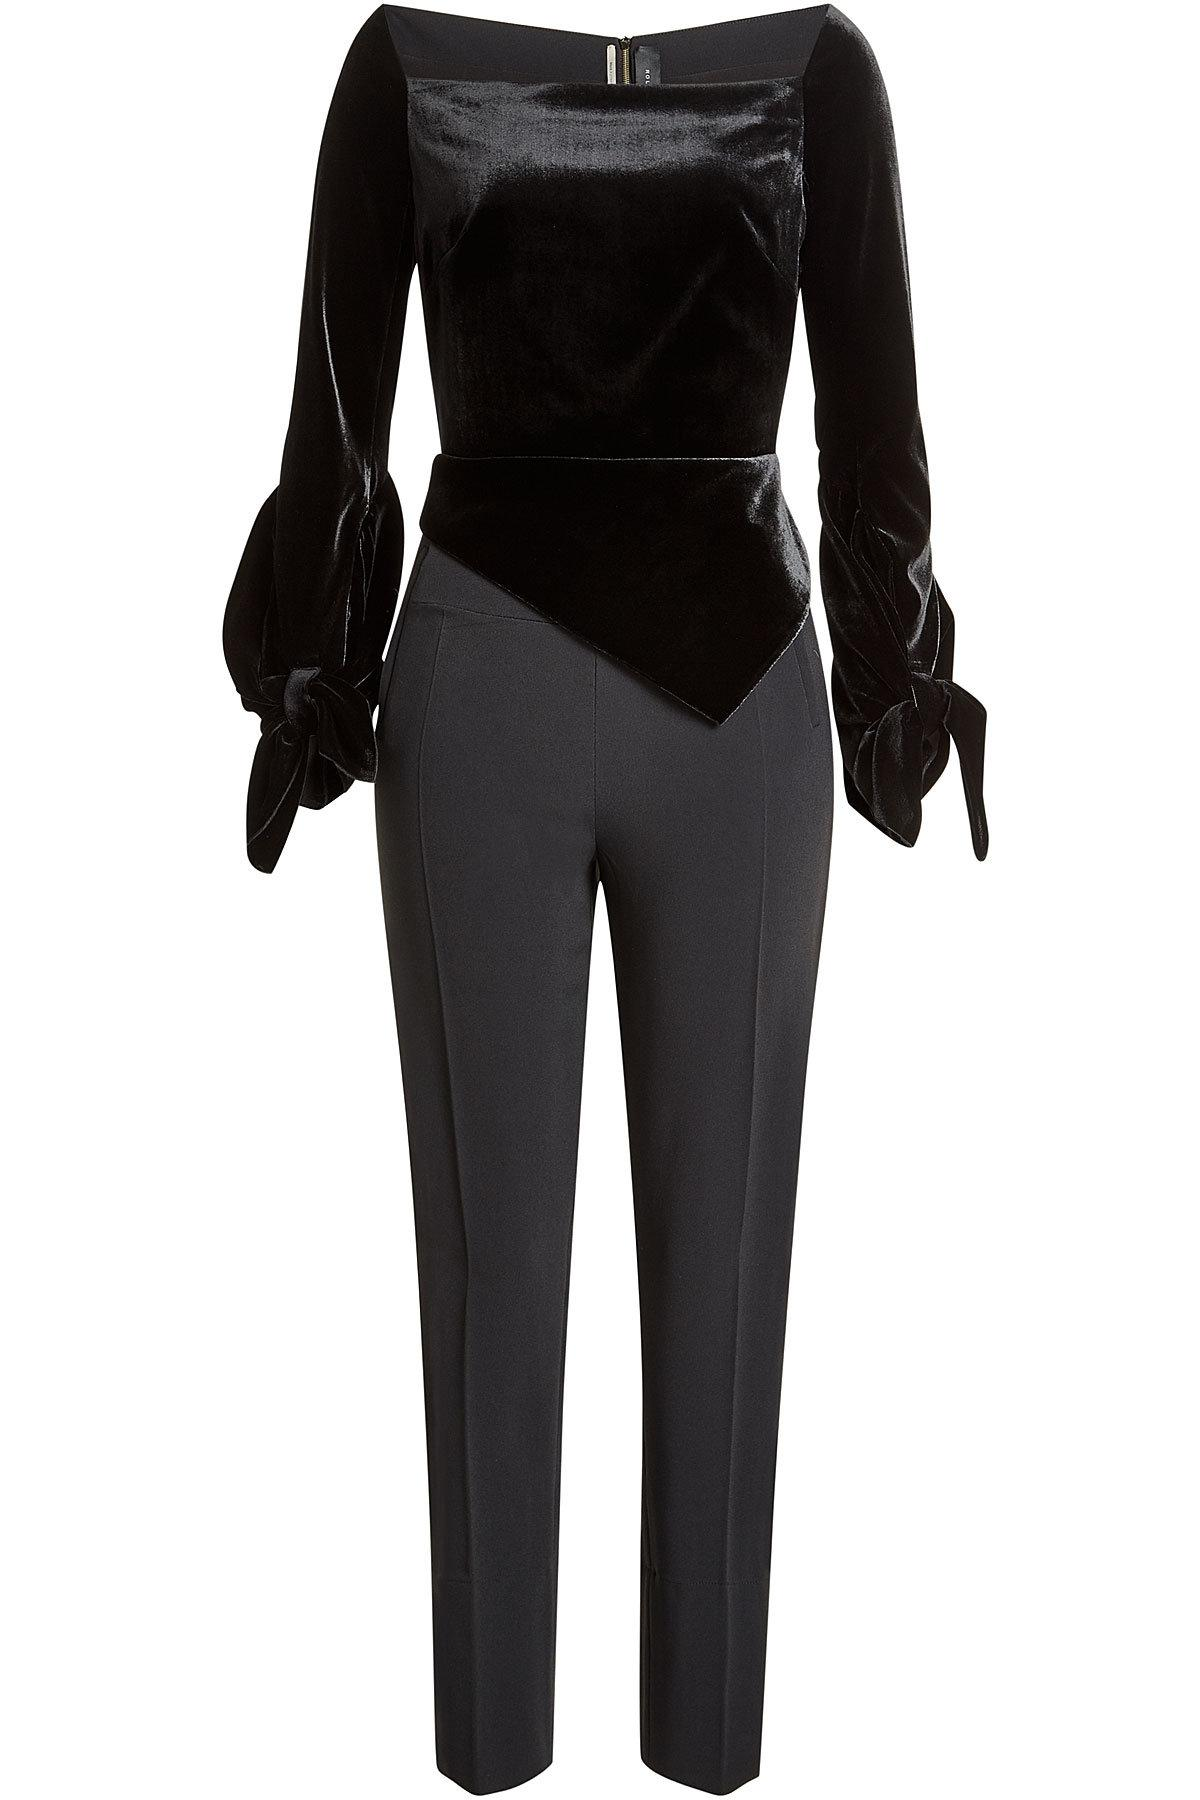 Roland Mouret Jumpsuit With Velvet Top In Black